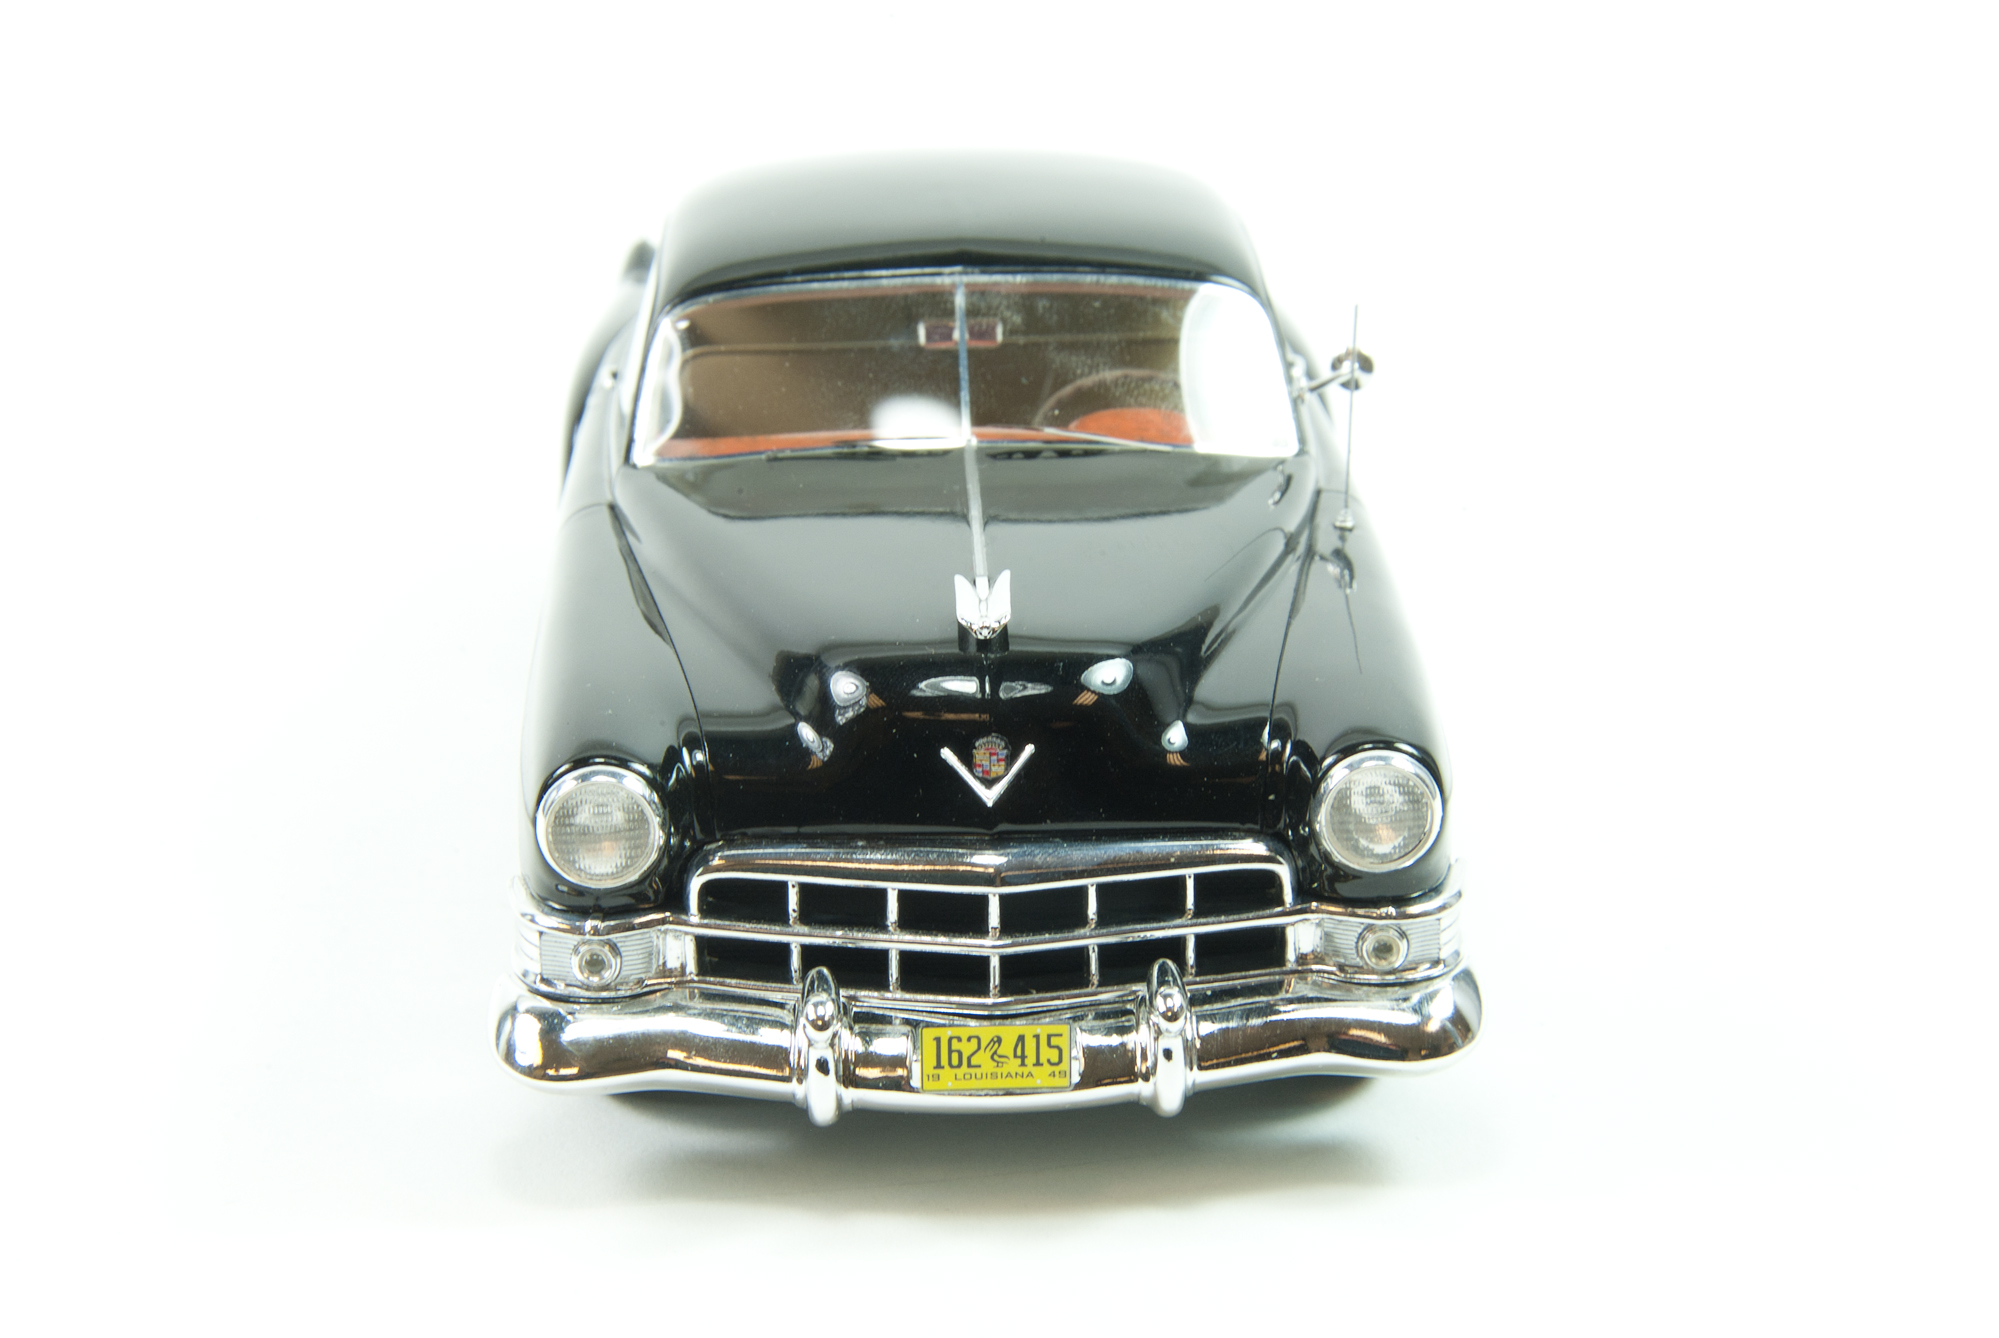 1949 Cadillac V8 Engine Die Cast Neos 1 24 Scale Series 62 Club Coupe Neo